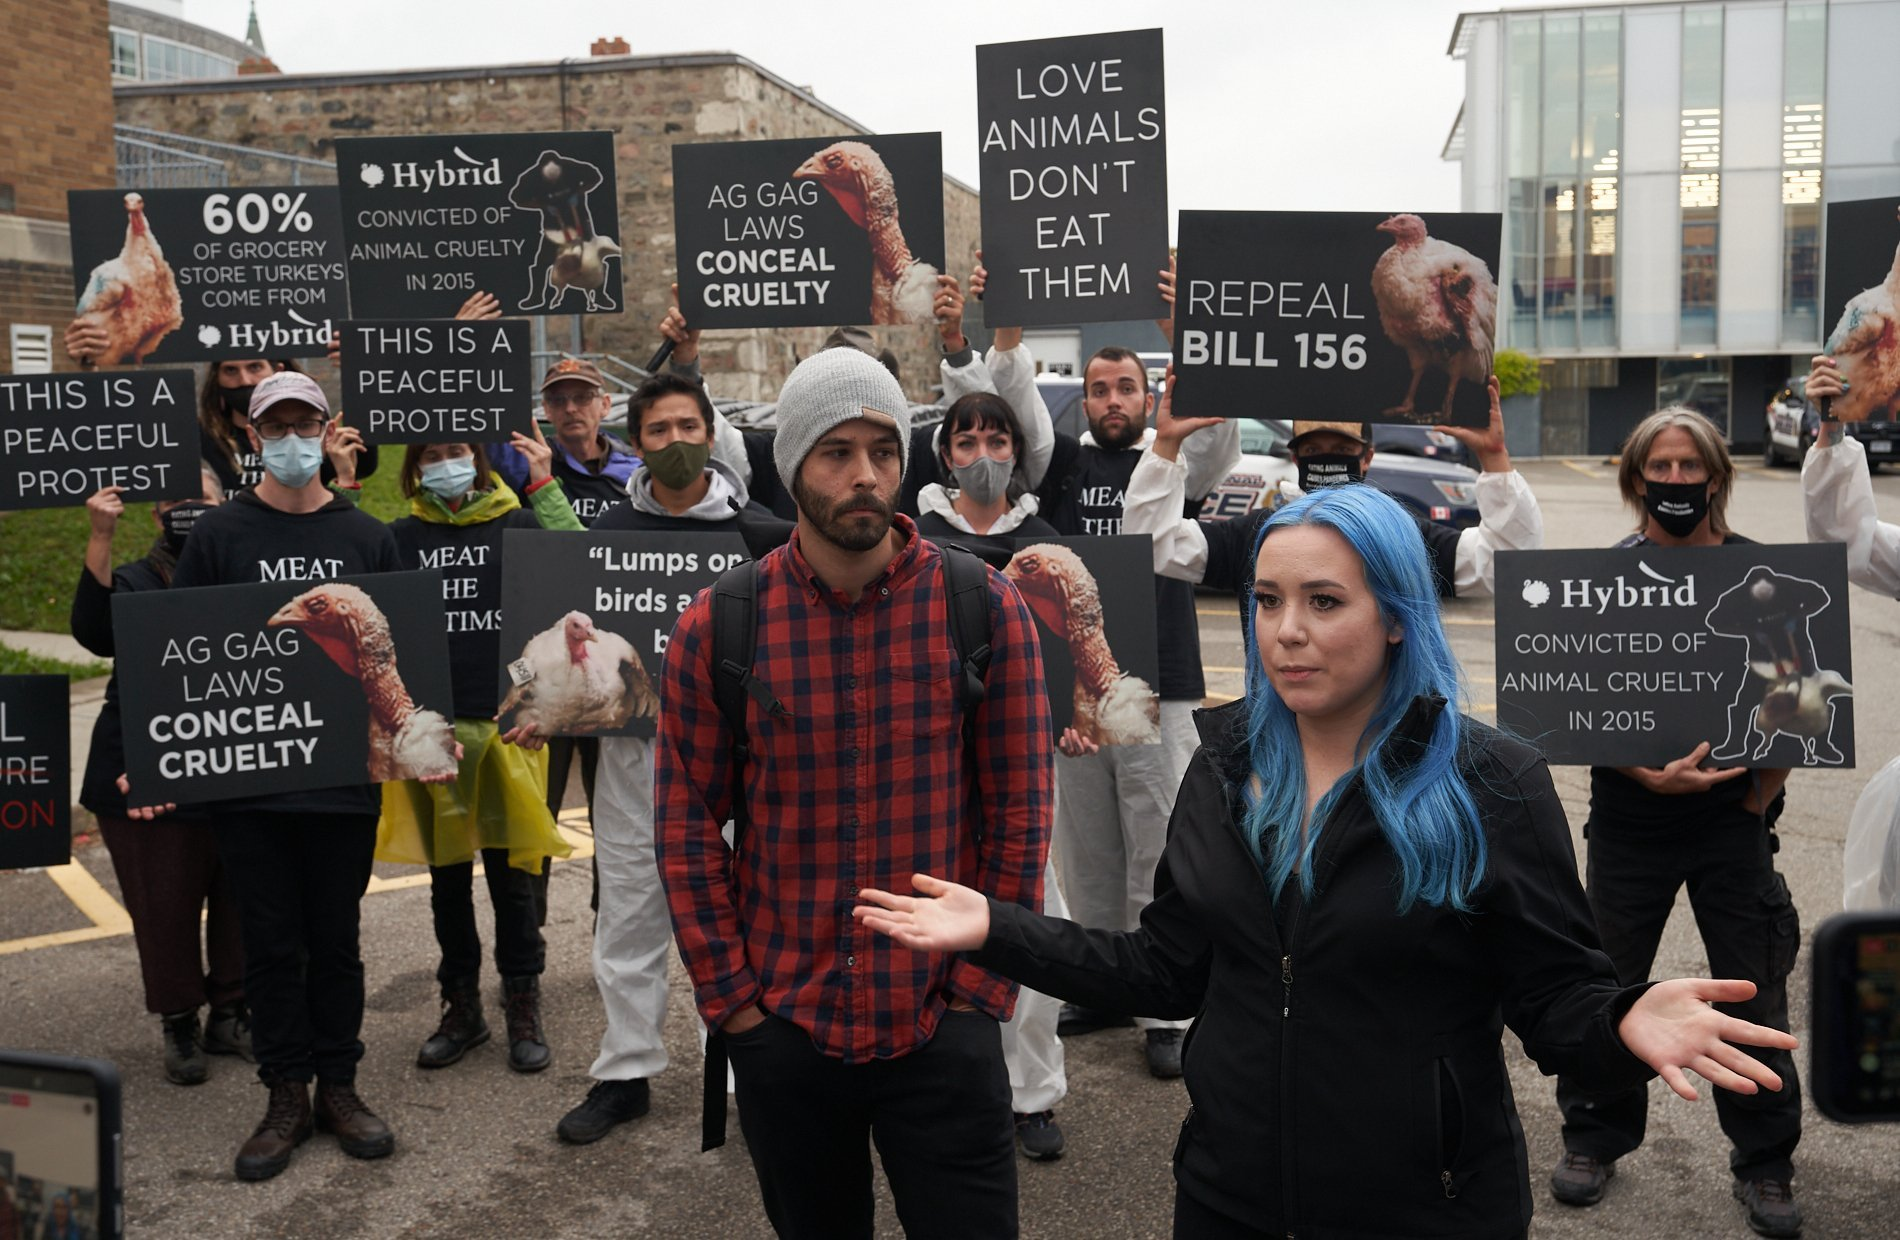 Amy Soranno (right) and Nick Schafer stand in front of supporters after being released from Waterloo Region police custody. Both were arrested and charged before a planned sit-in at a turkey farm on Oct. 3, 2021.